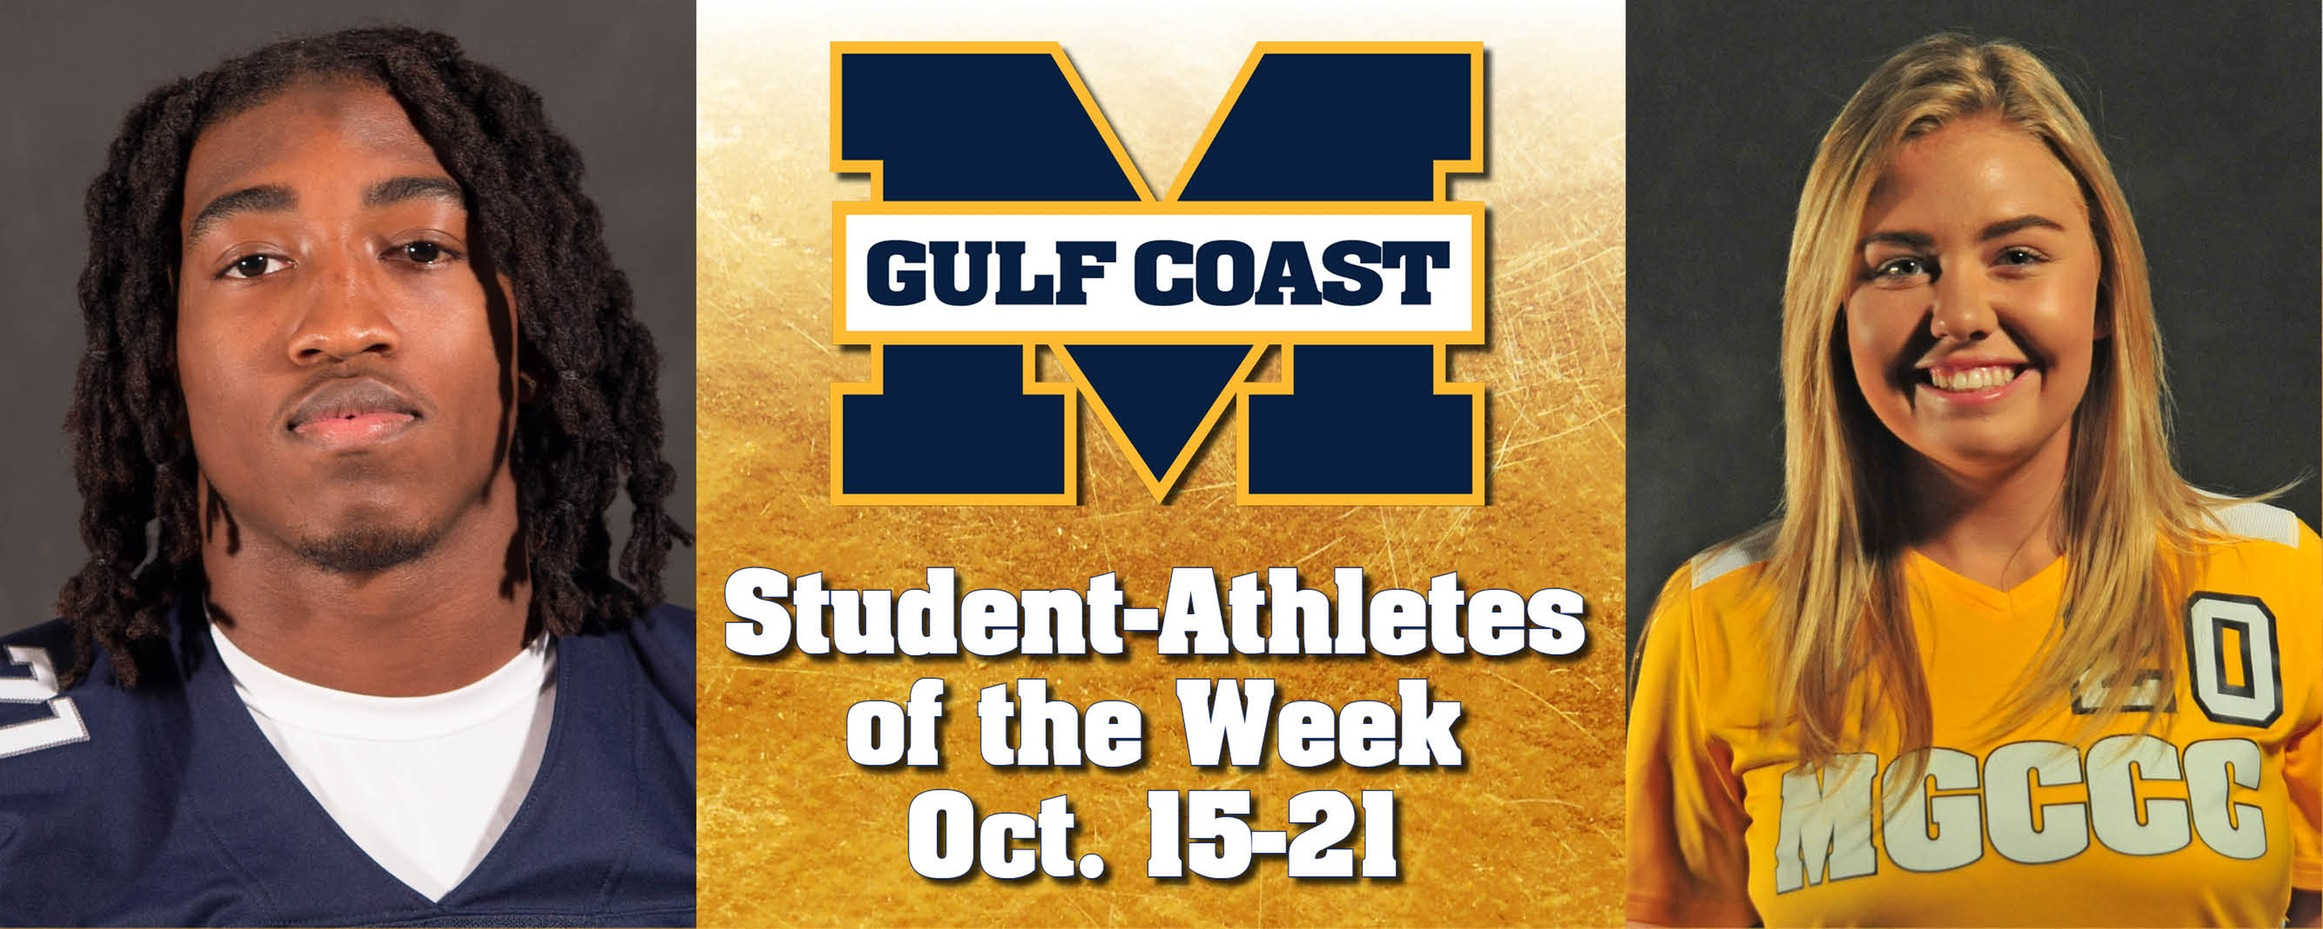 Johnson, Helms named MGCCC Student-Athletes of the Week